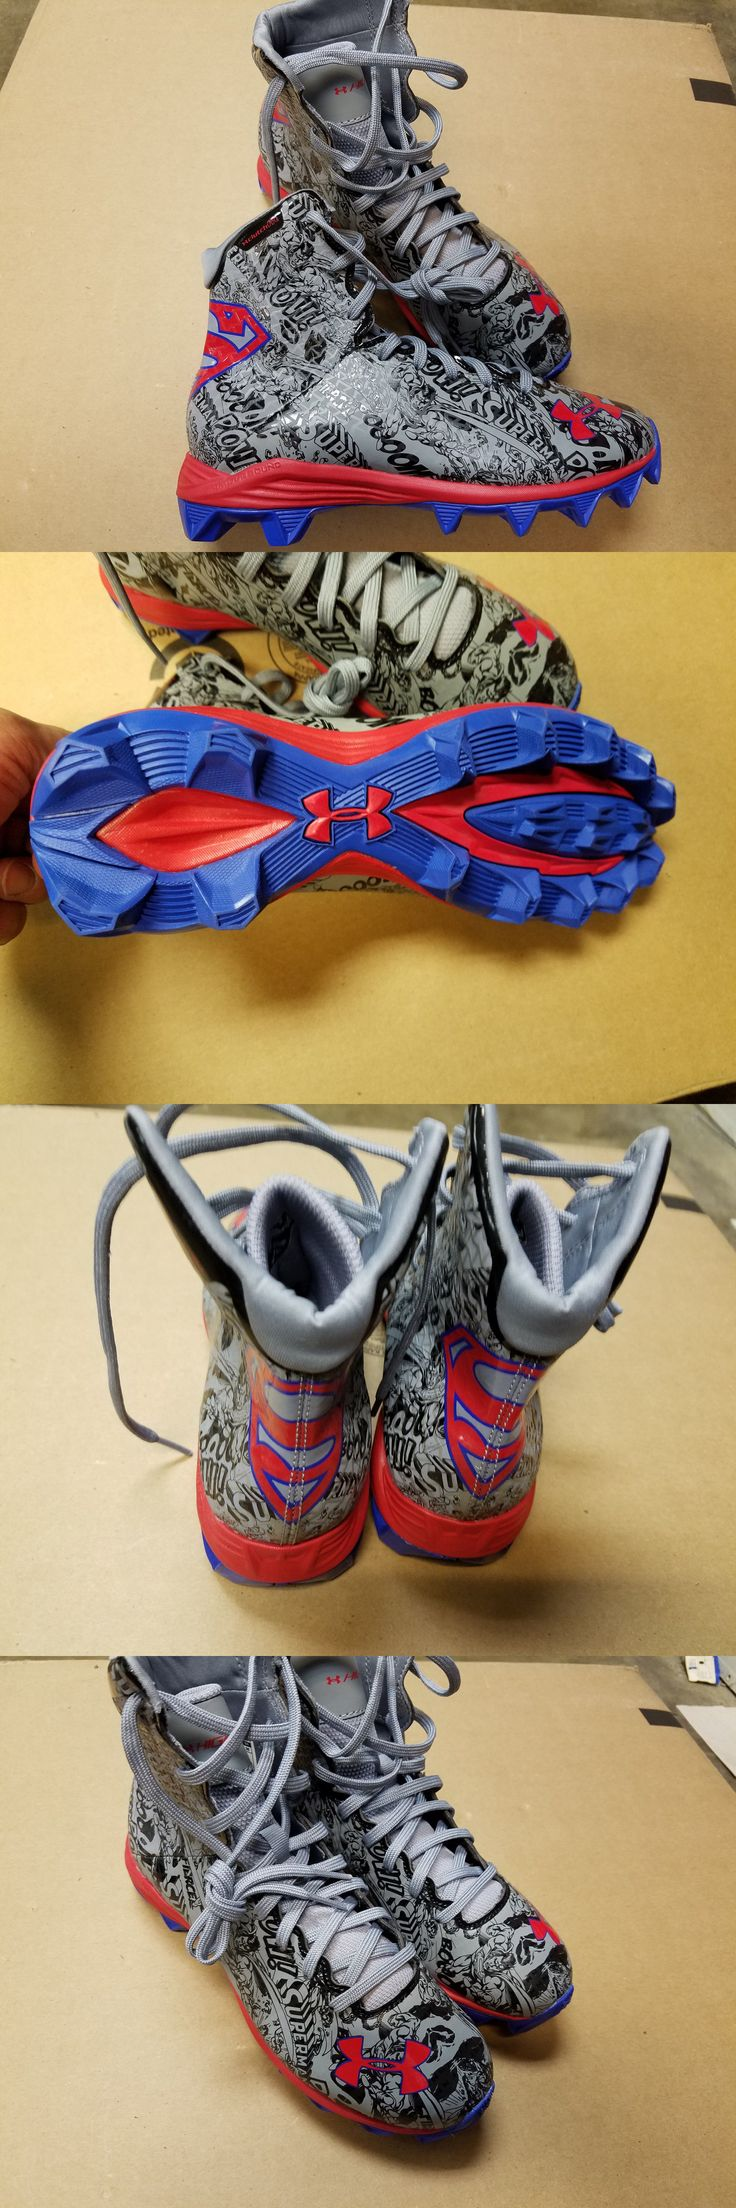 Youth 159118: Under Armour Alter Ego Superman Highlight Mc Clutchfit Football Cleats Youth 5.5 -> BUY IT NOW ONLY: $79.99 on eBay!